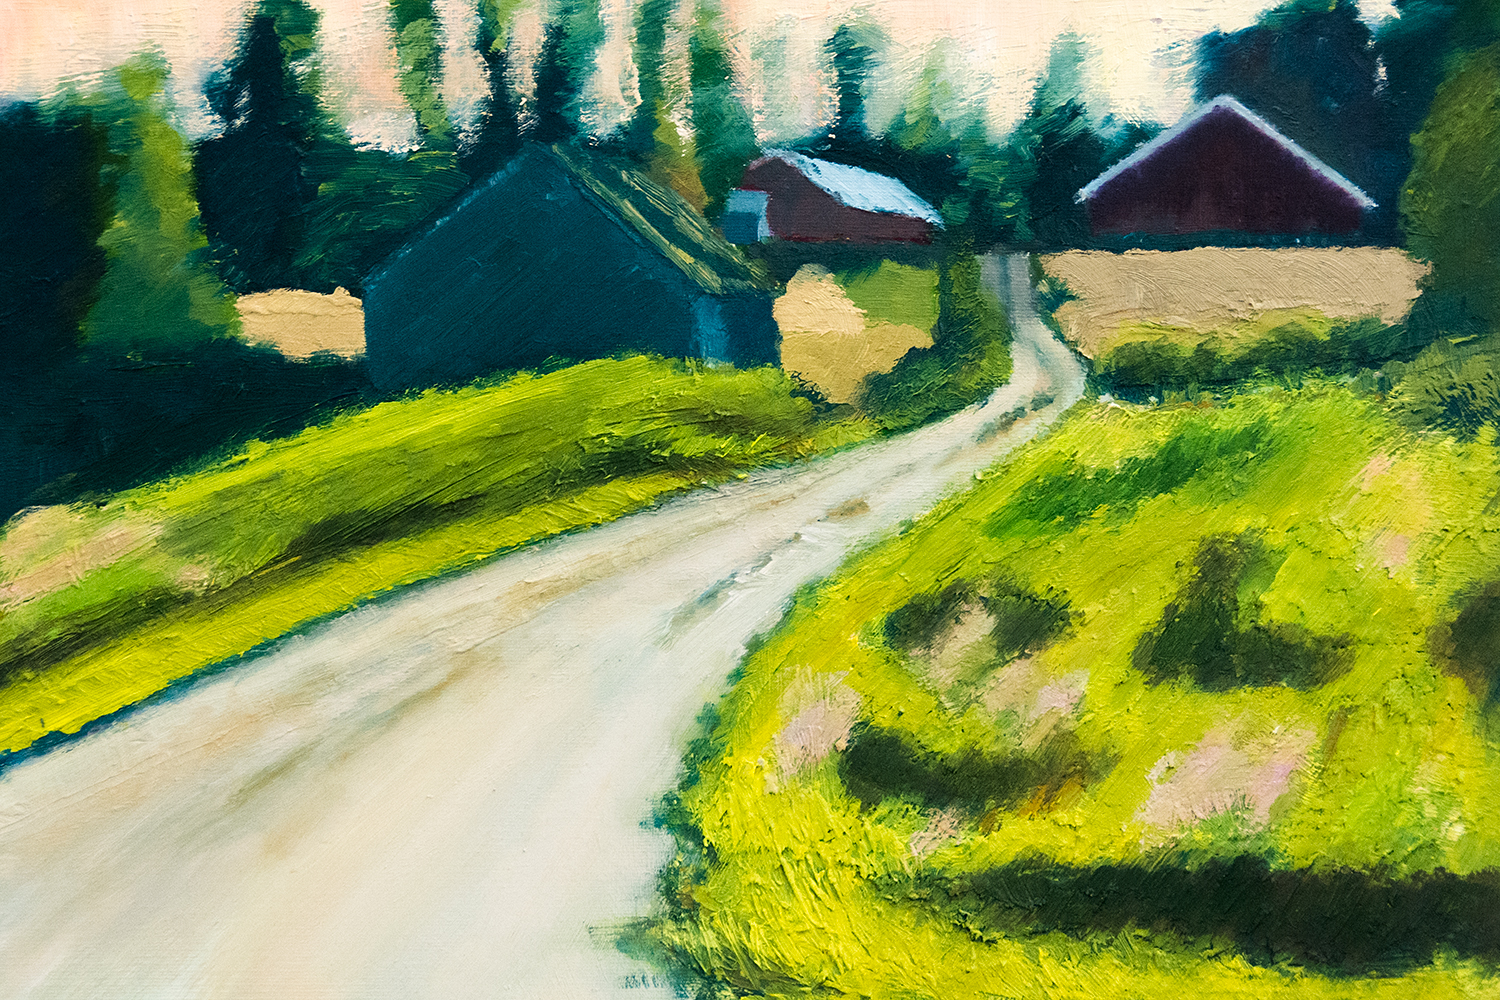 The Farm, Joutsa, Finland, oil on paper, 50x35cm (2016)